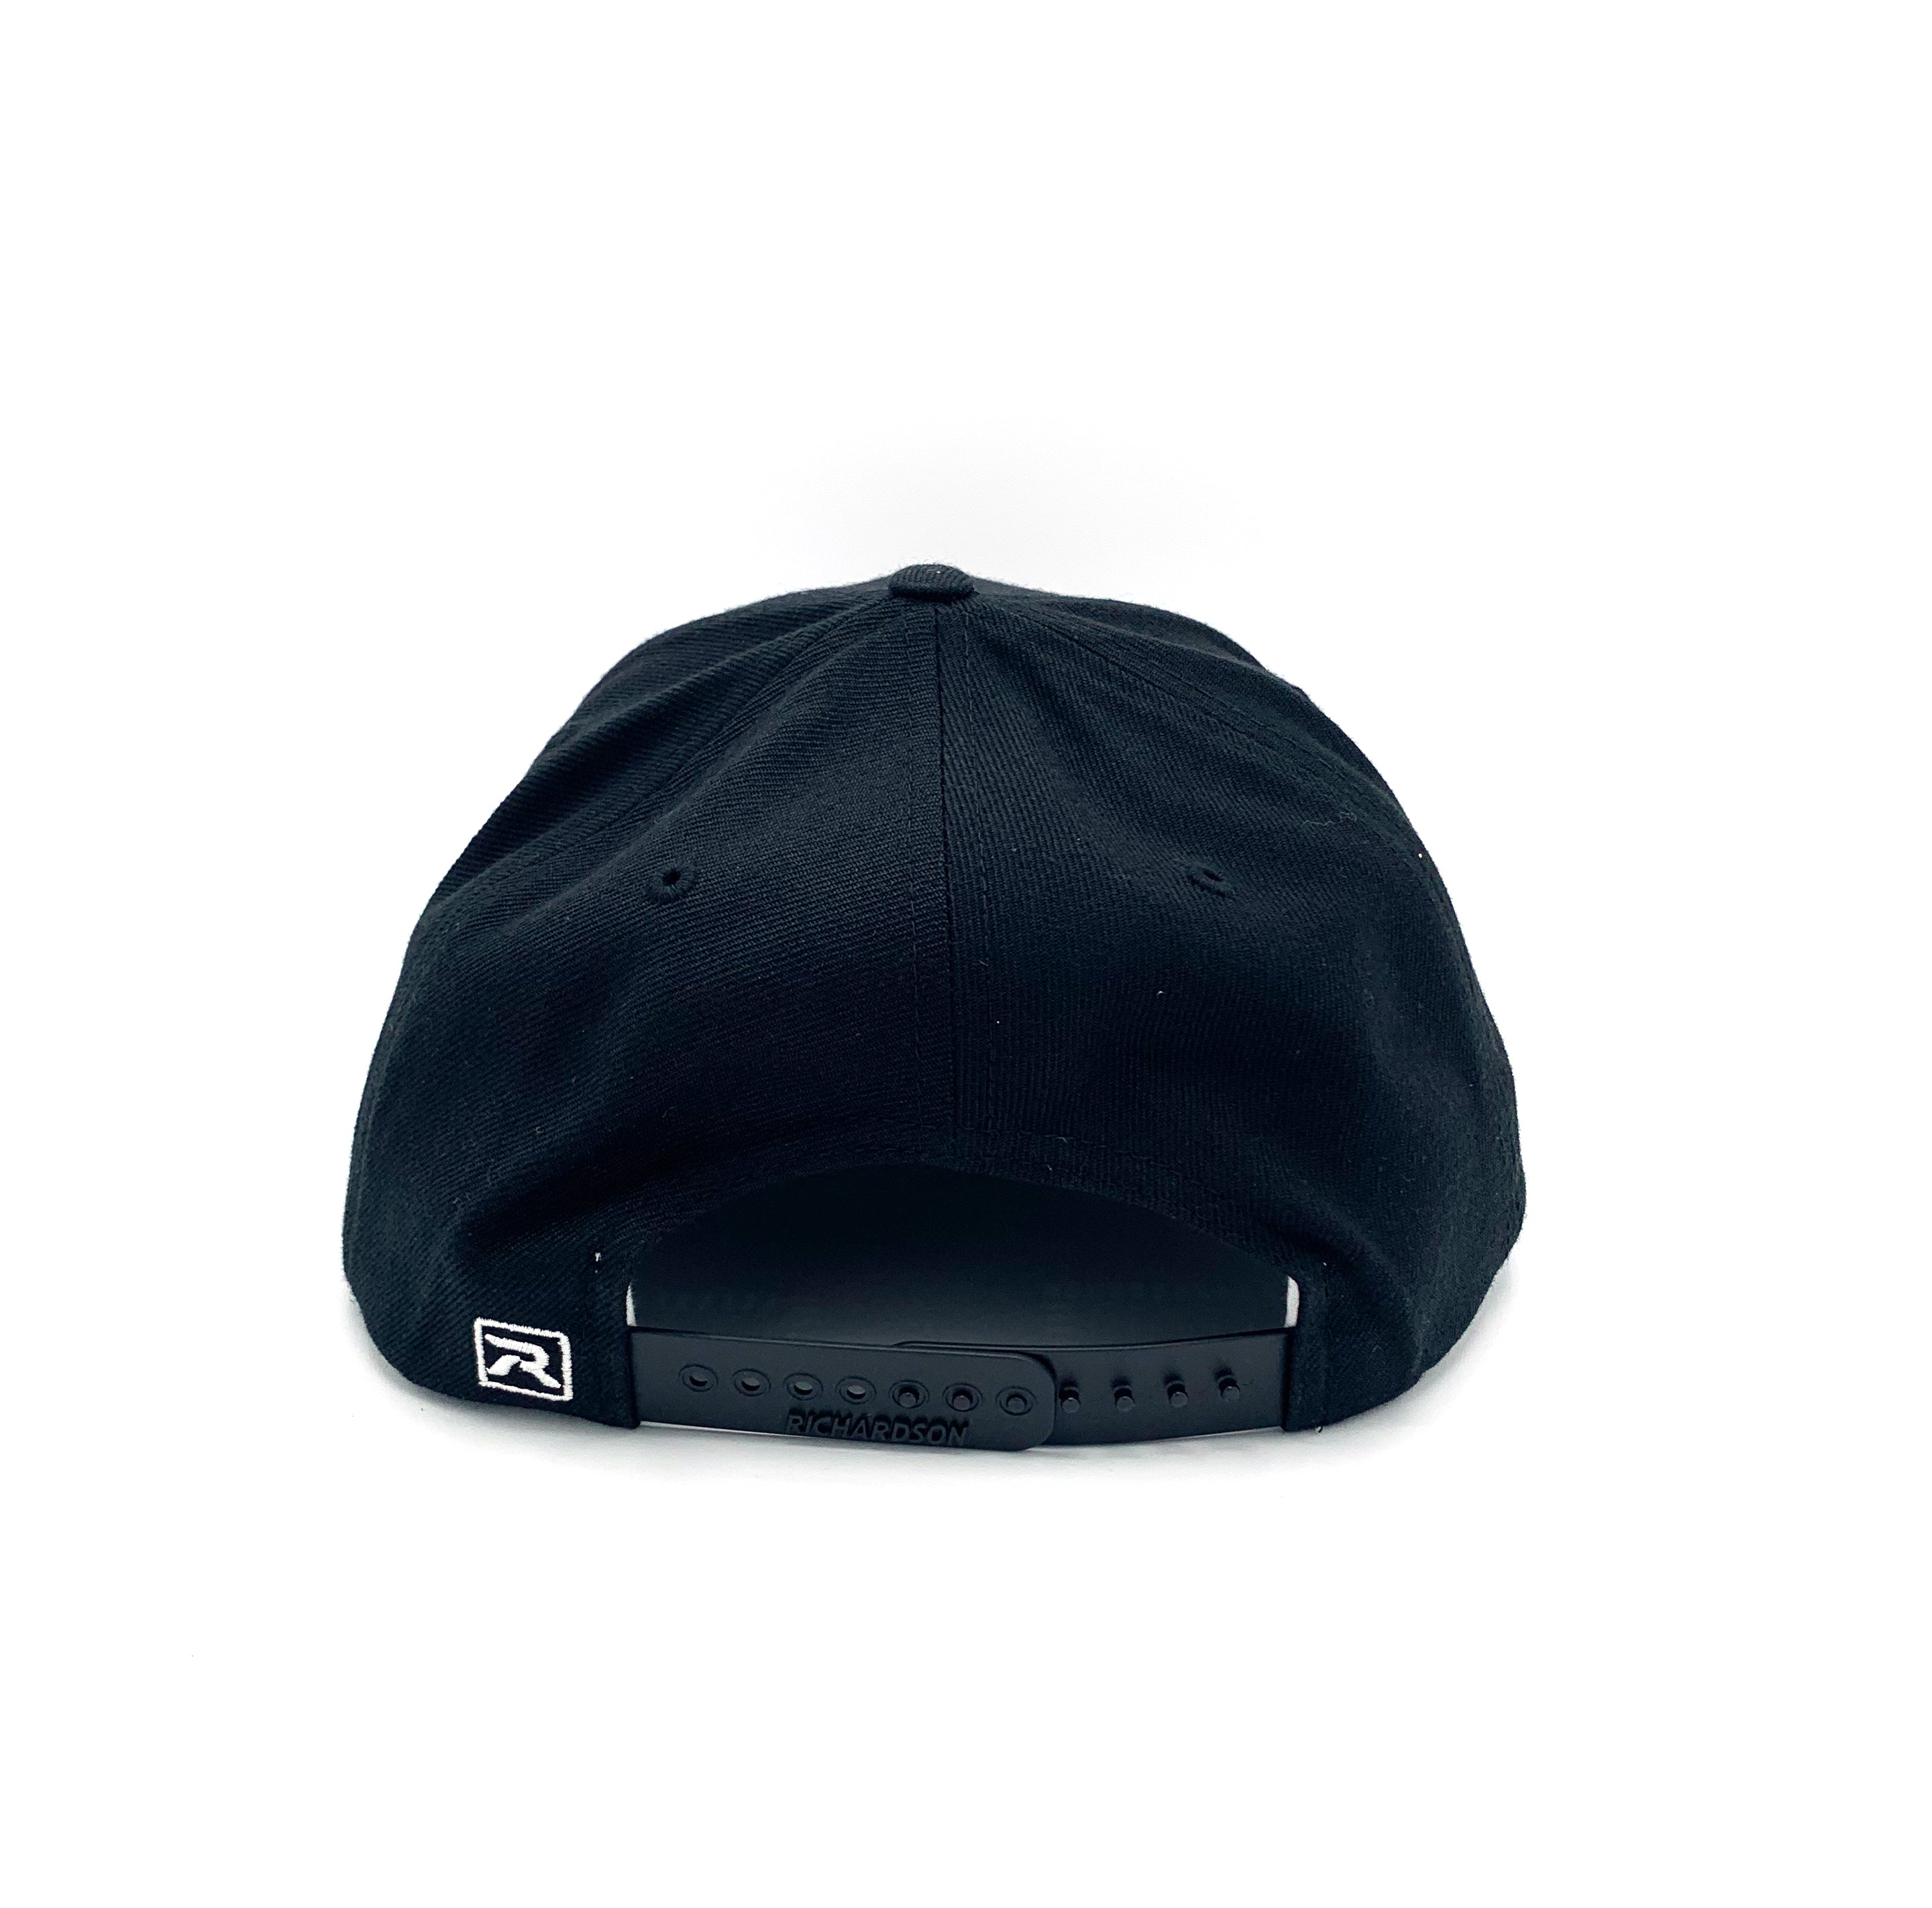 FG Patch Flat Bill Snap Back Hat - Black - Fishing Grounds Coffee Company